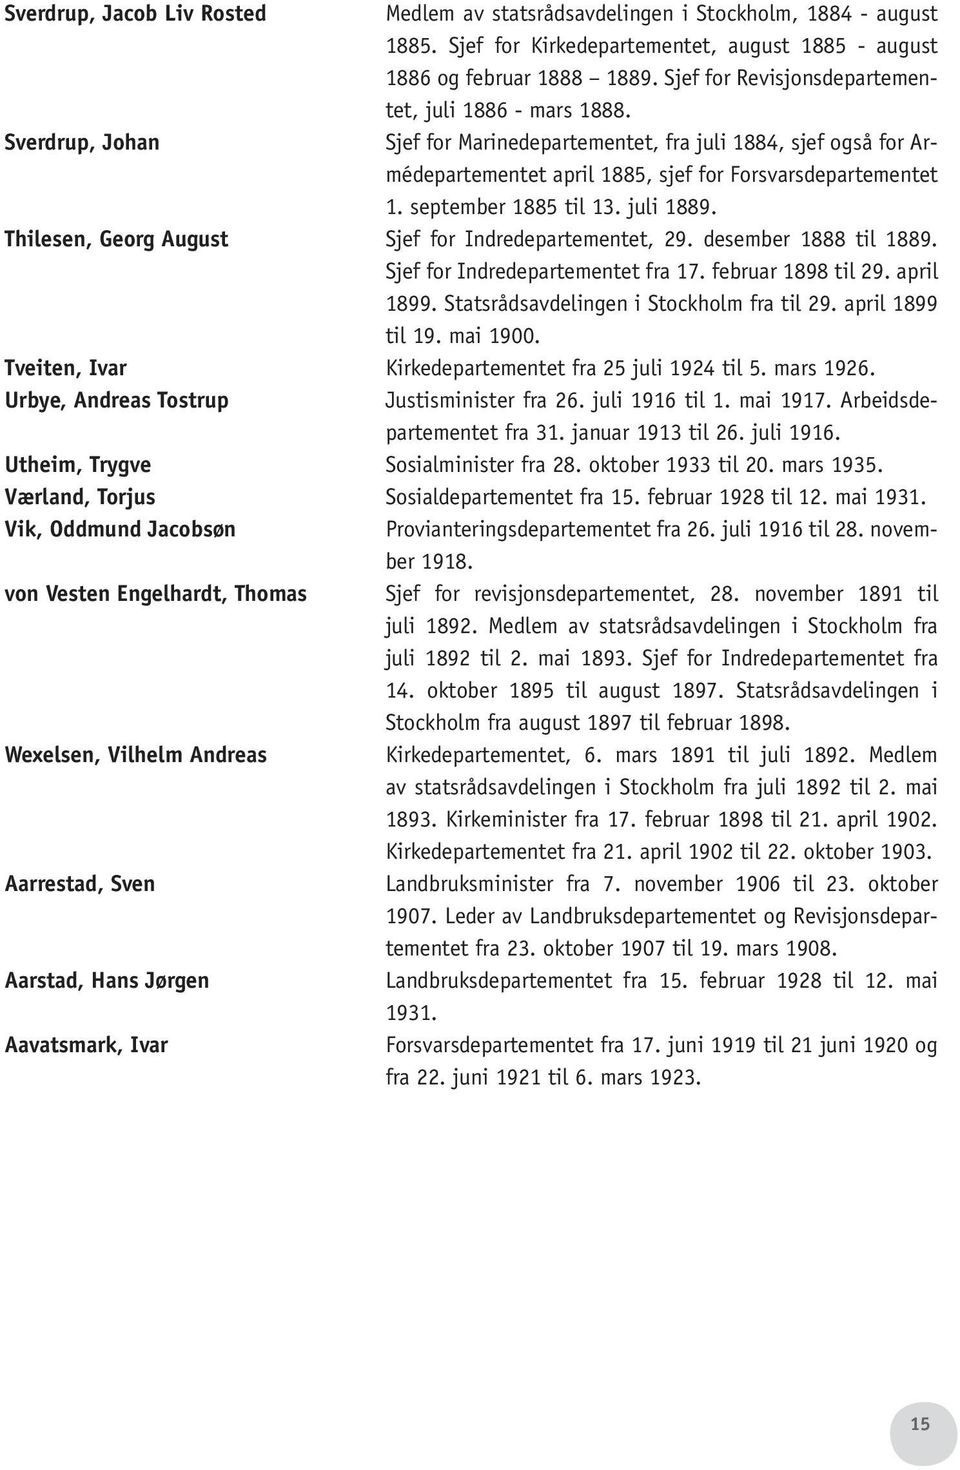 september 1885 til 13. juli 1889. Thilesen, Georg August Sjef for Indredepartementet, 29. desember 1888 til 1889. Sjef for Indredepartementet fra 17. februar 1898 til 29. april 1899.